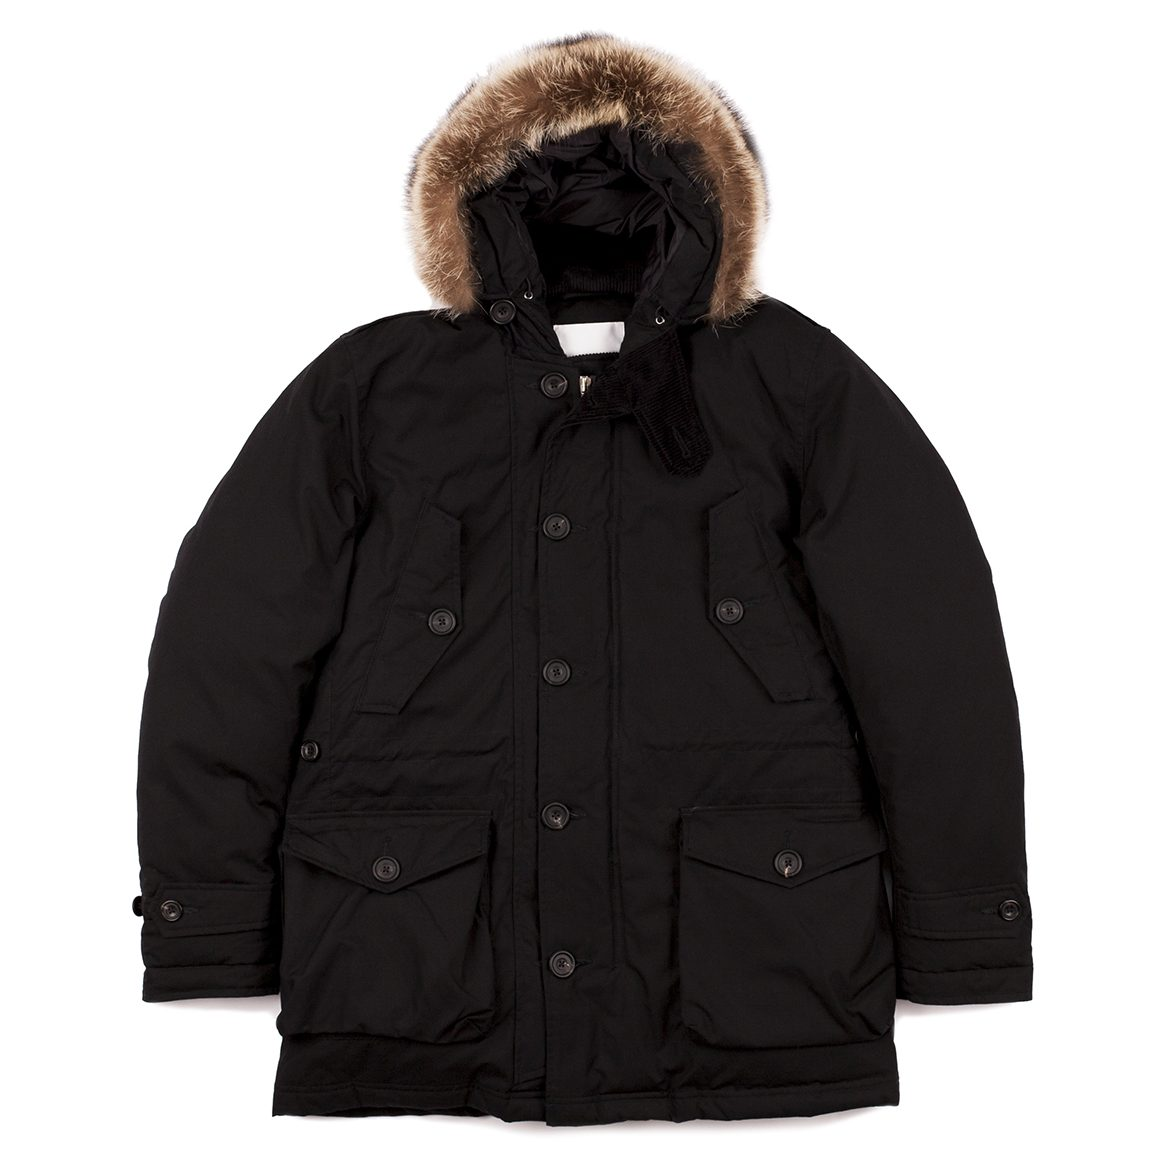 Timothy Everest Black Tailored Parka